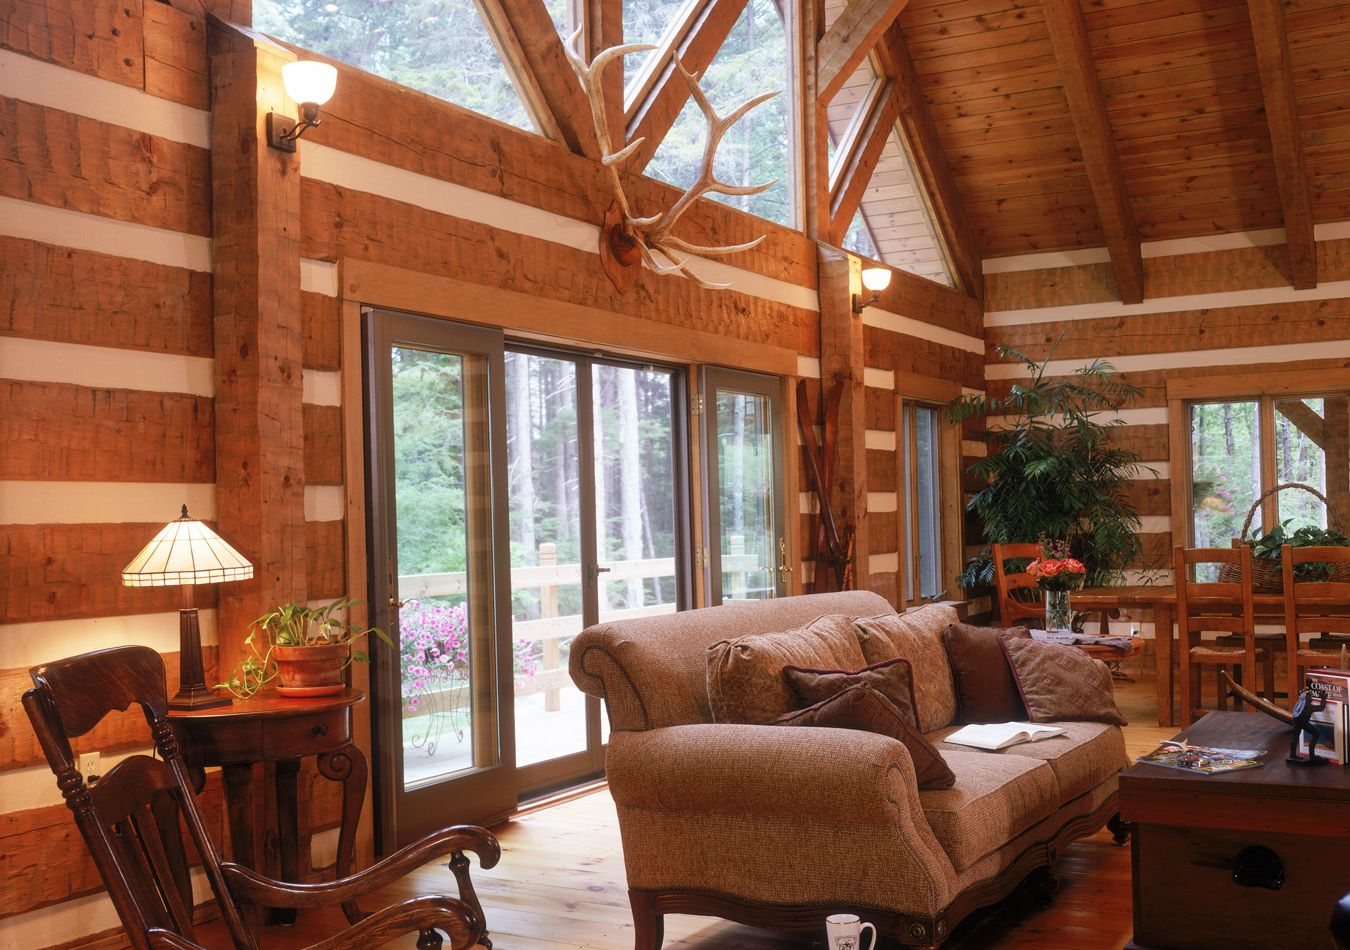 Lifeline Interior Dark Log Home Interiors. Log Home Interior Photos. Home Design Ideas